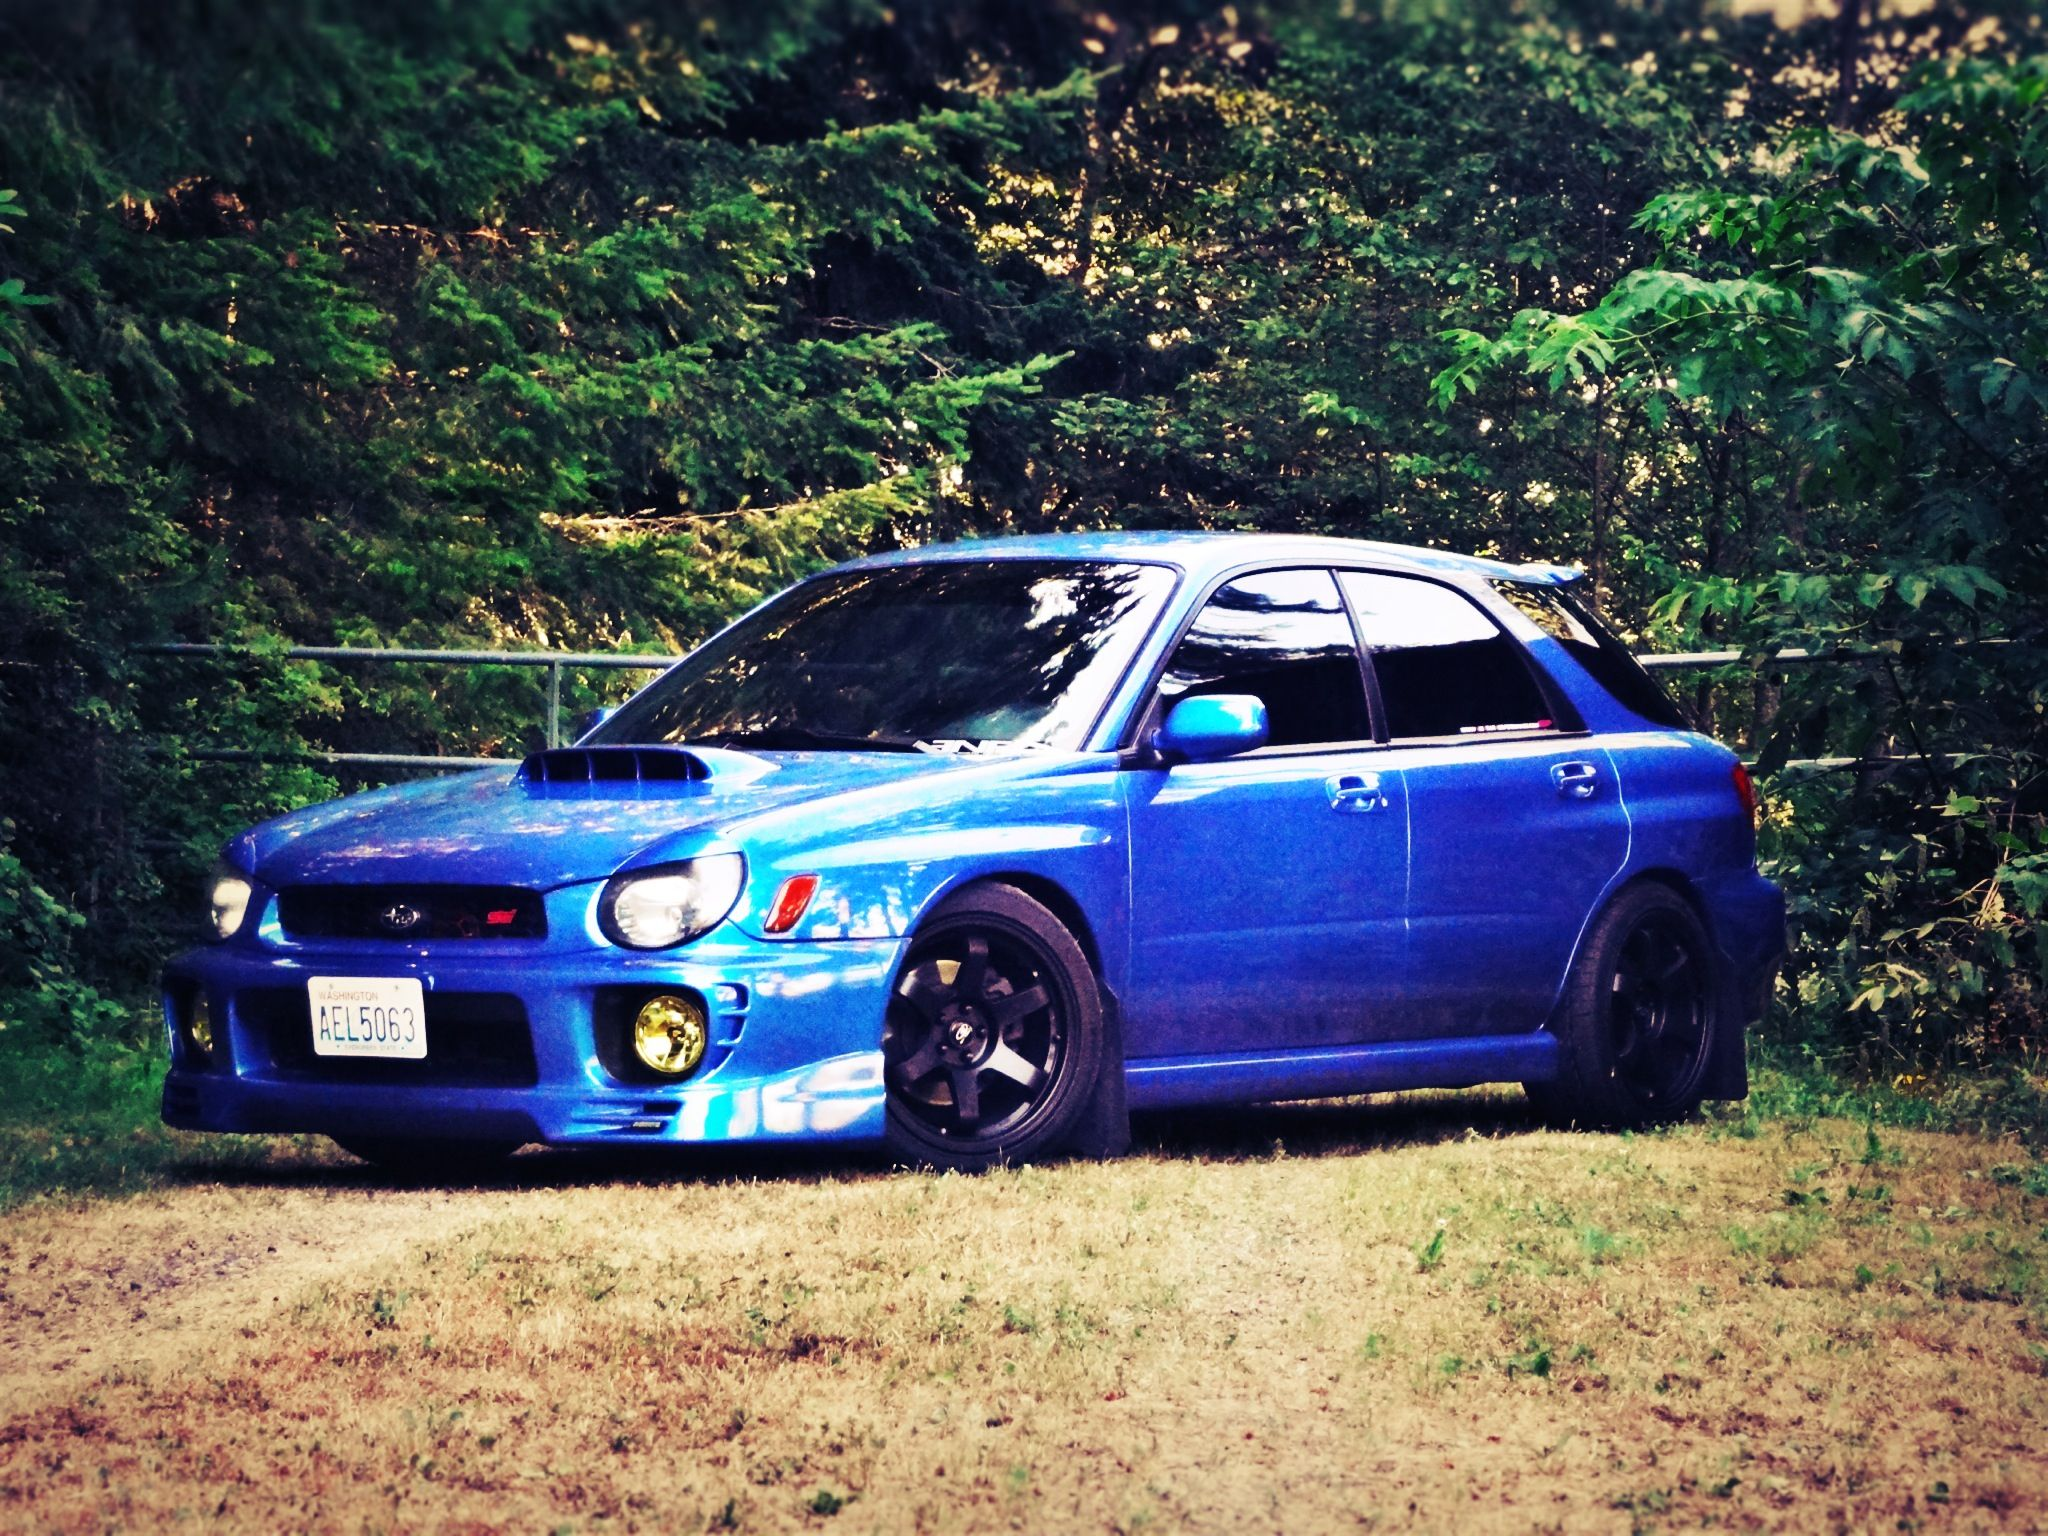 Dougs wrx wagon wrx pinterest wrx wagon subaru and subaru wrx dougs wrx wagon wrx wagonboyfriendrally carsubaru imprezavehicles vanachro Images